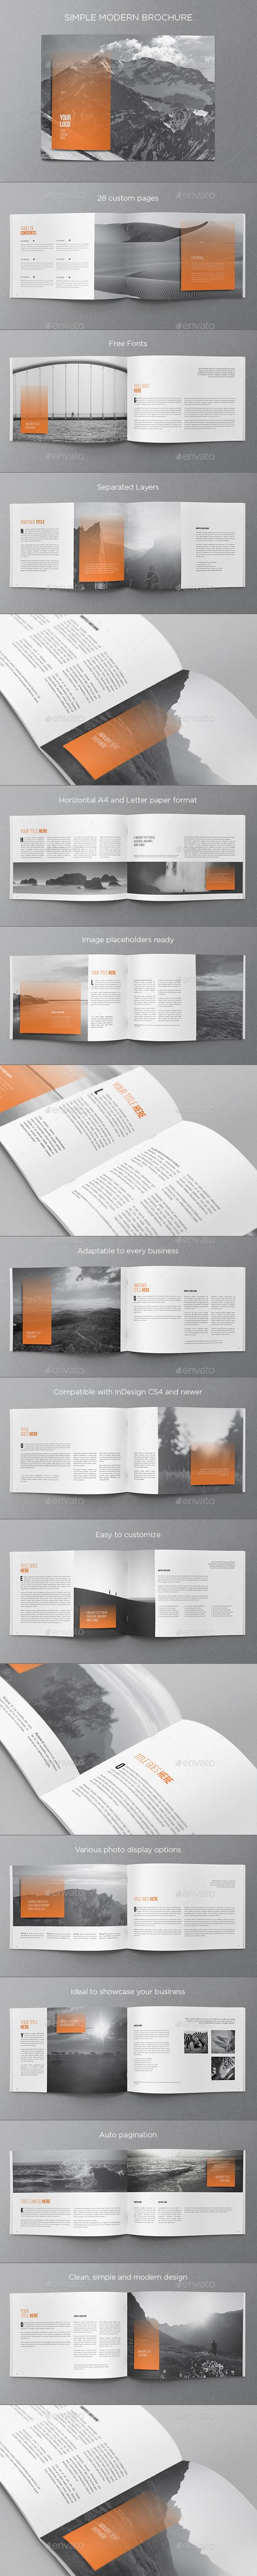 Simple Modern Brochure  Brochures Layouts And Layout Design